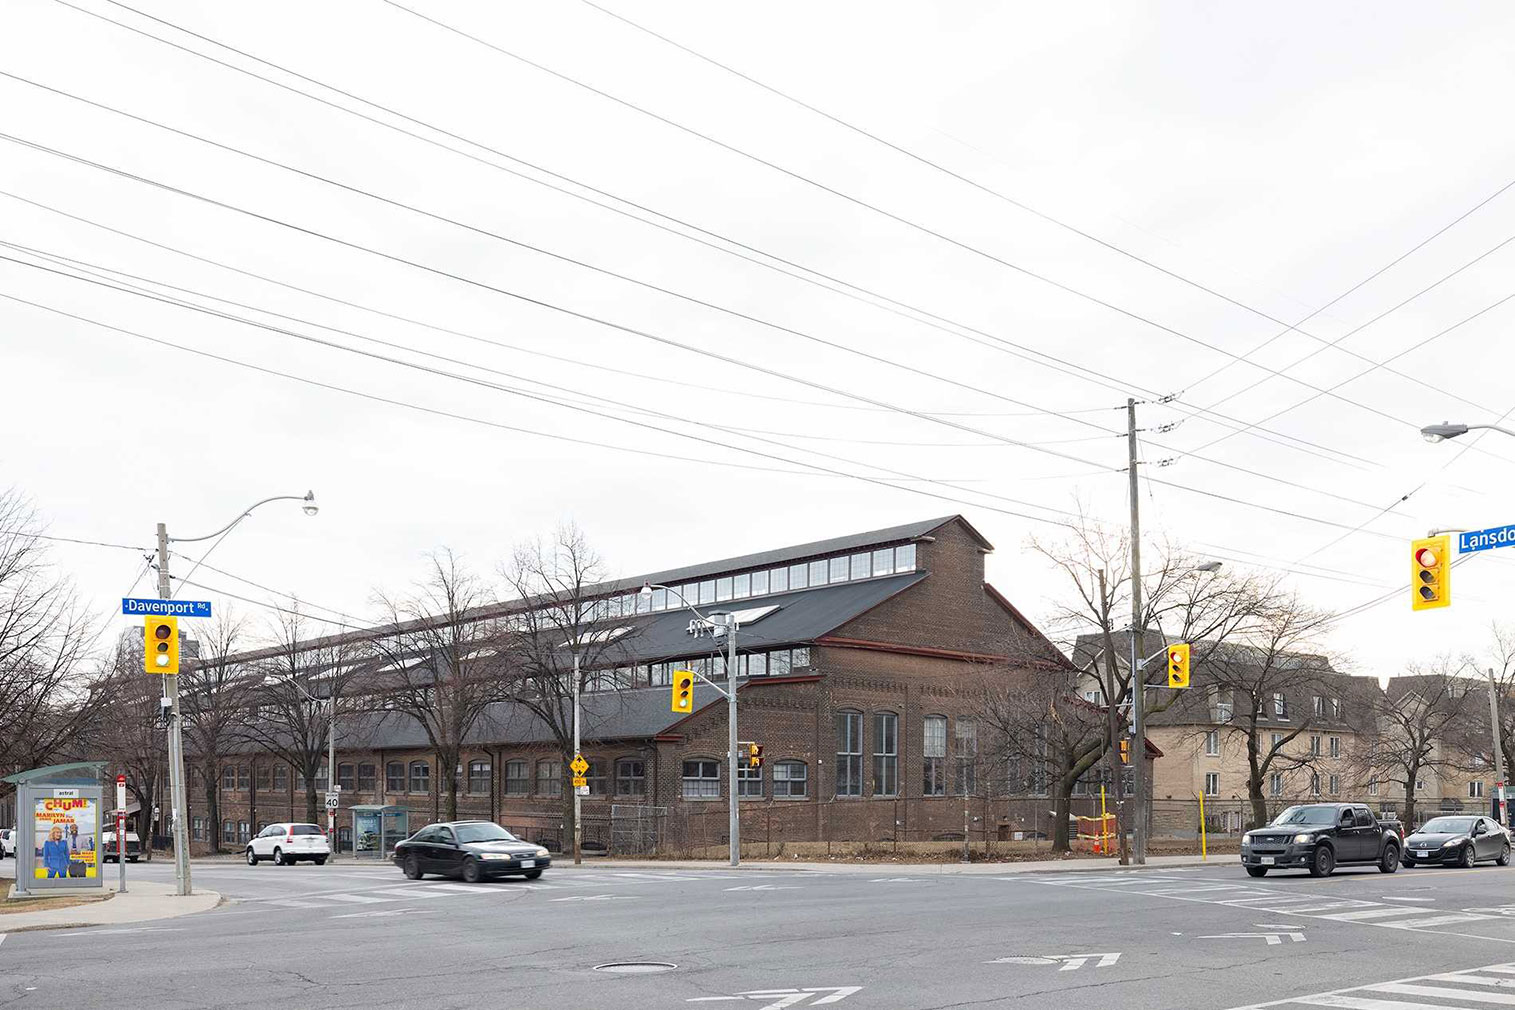 Street cars and trains were manufactured at the former factory at 1100 Lansdowne Avenue in the early 20th century